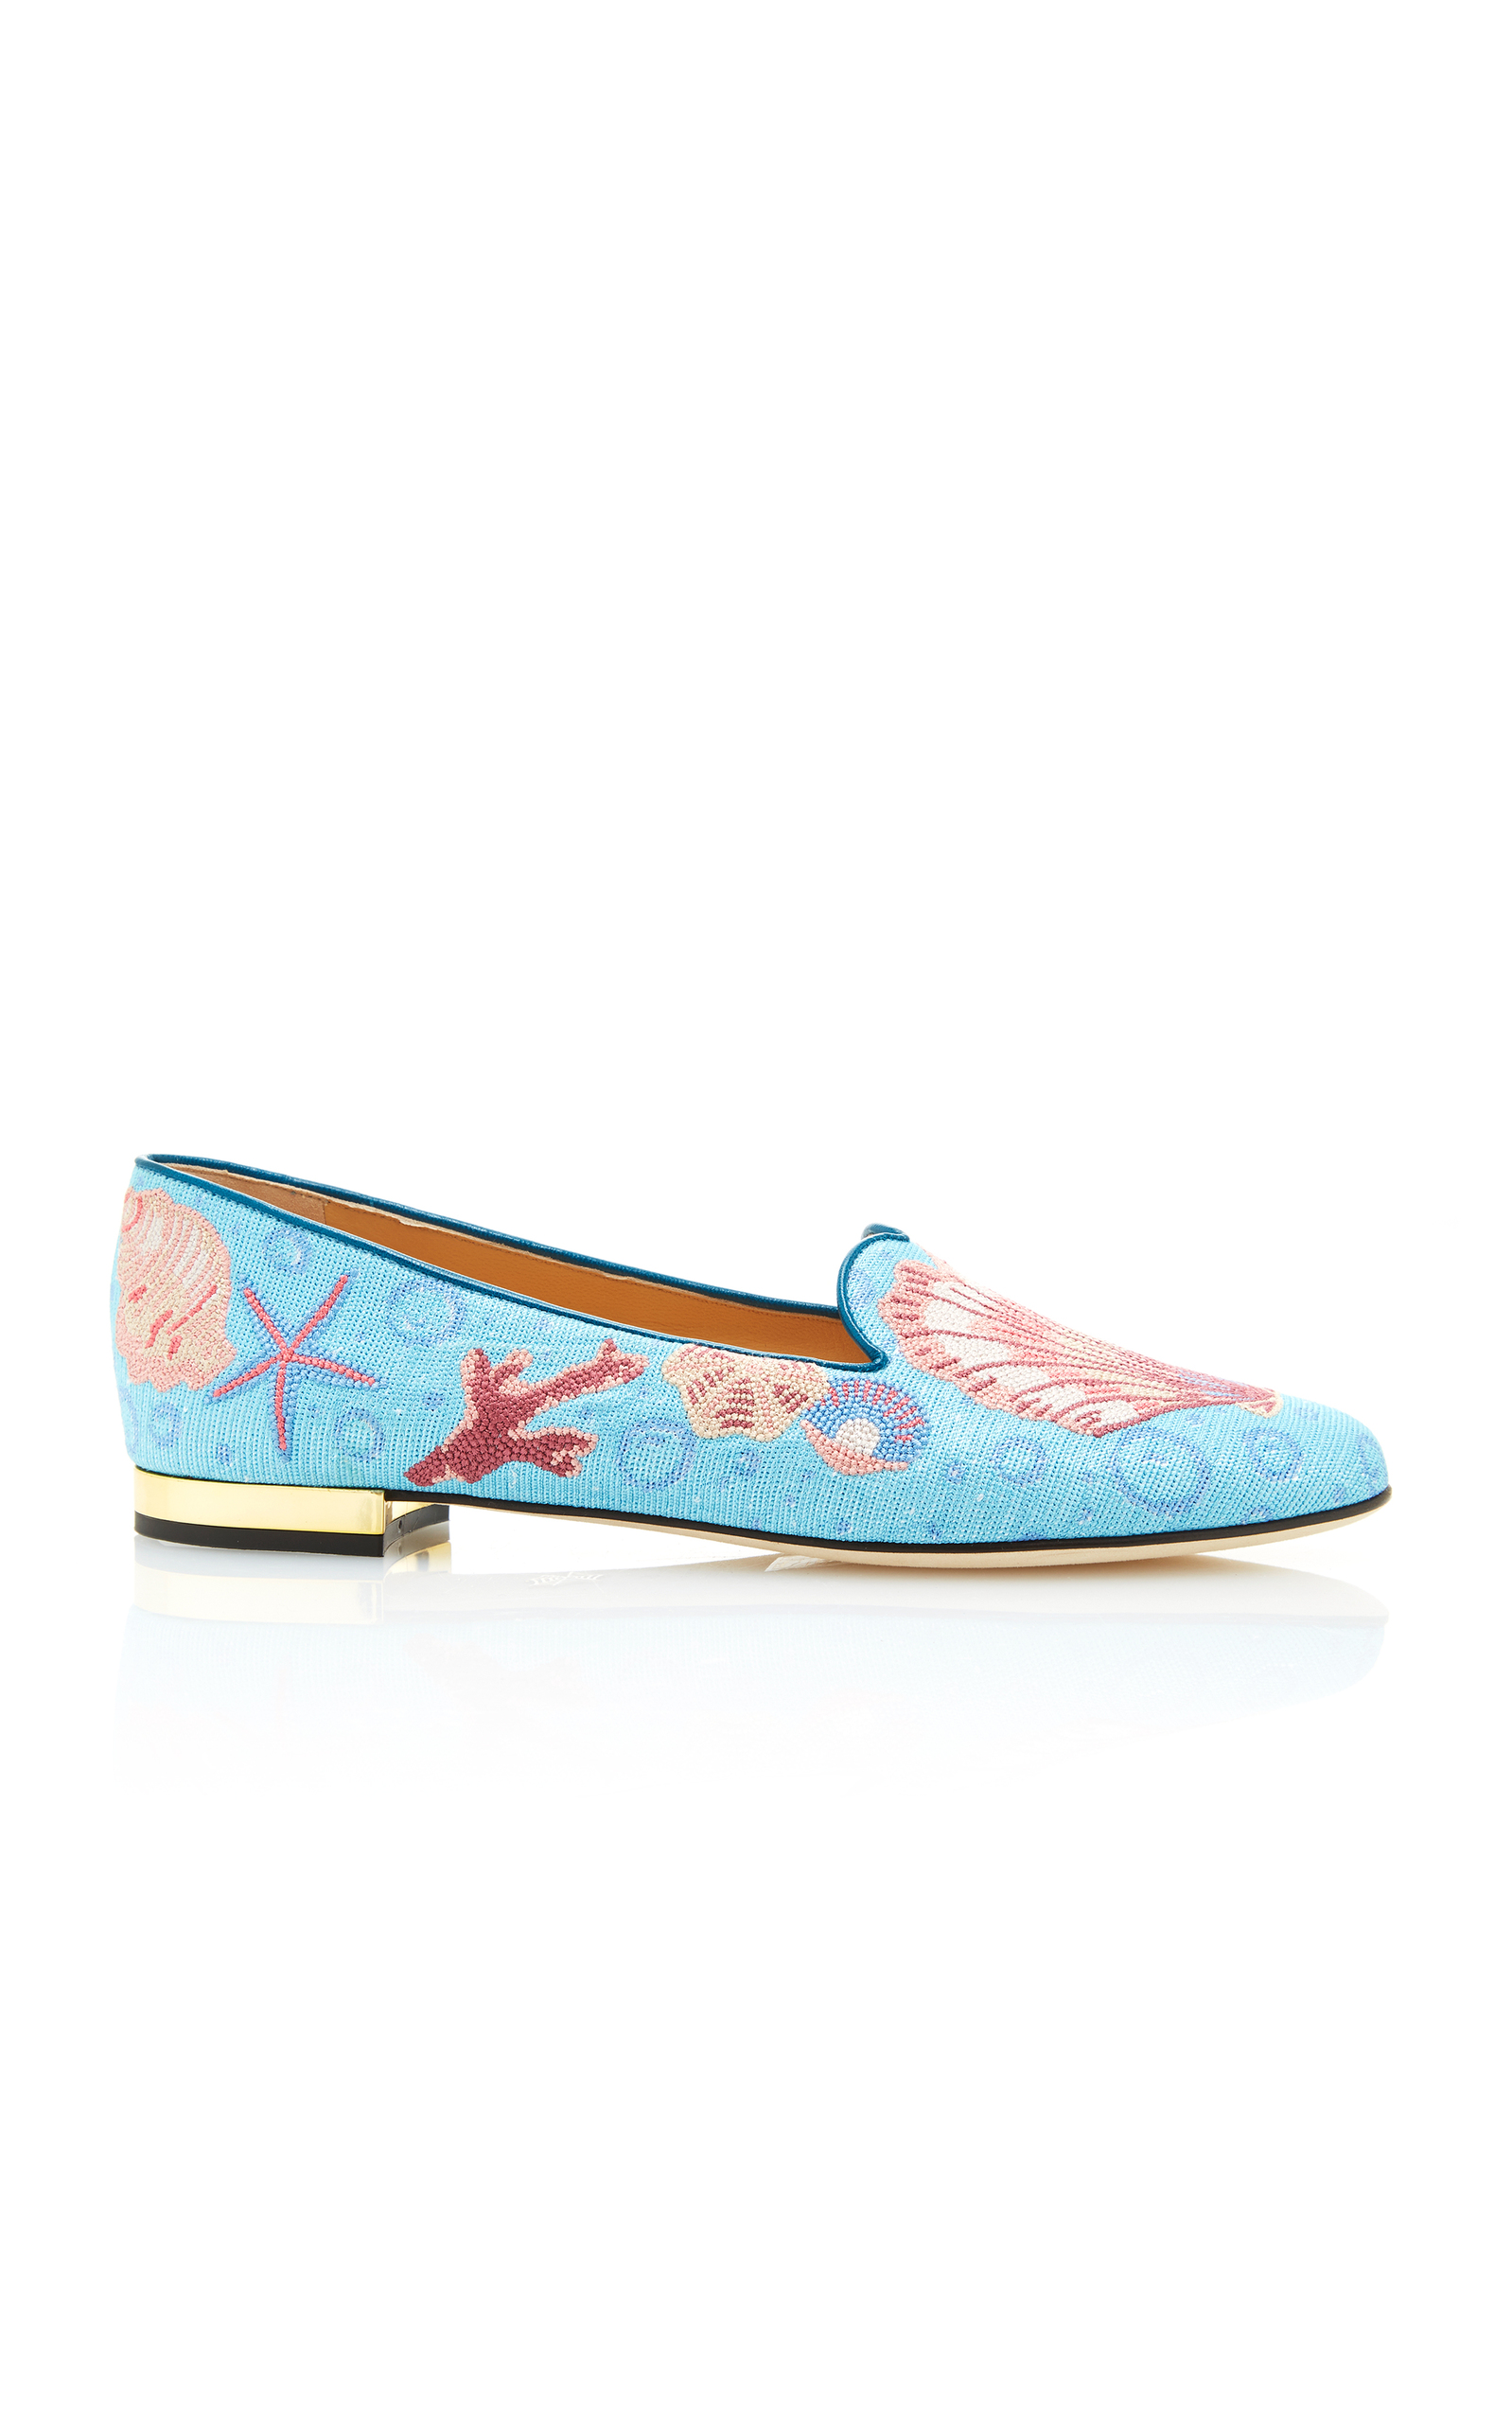 Charlotte Olympia Oceanic Slippers